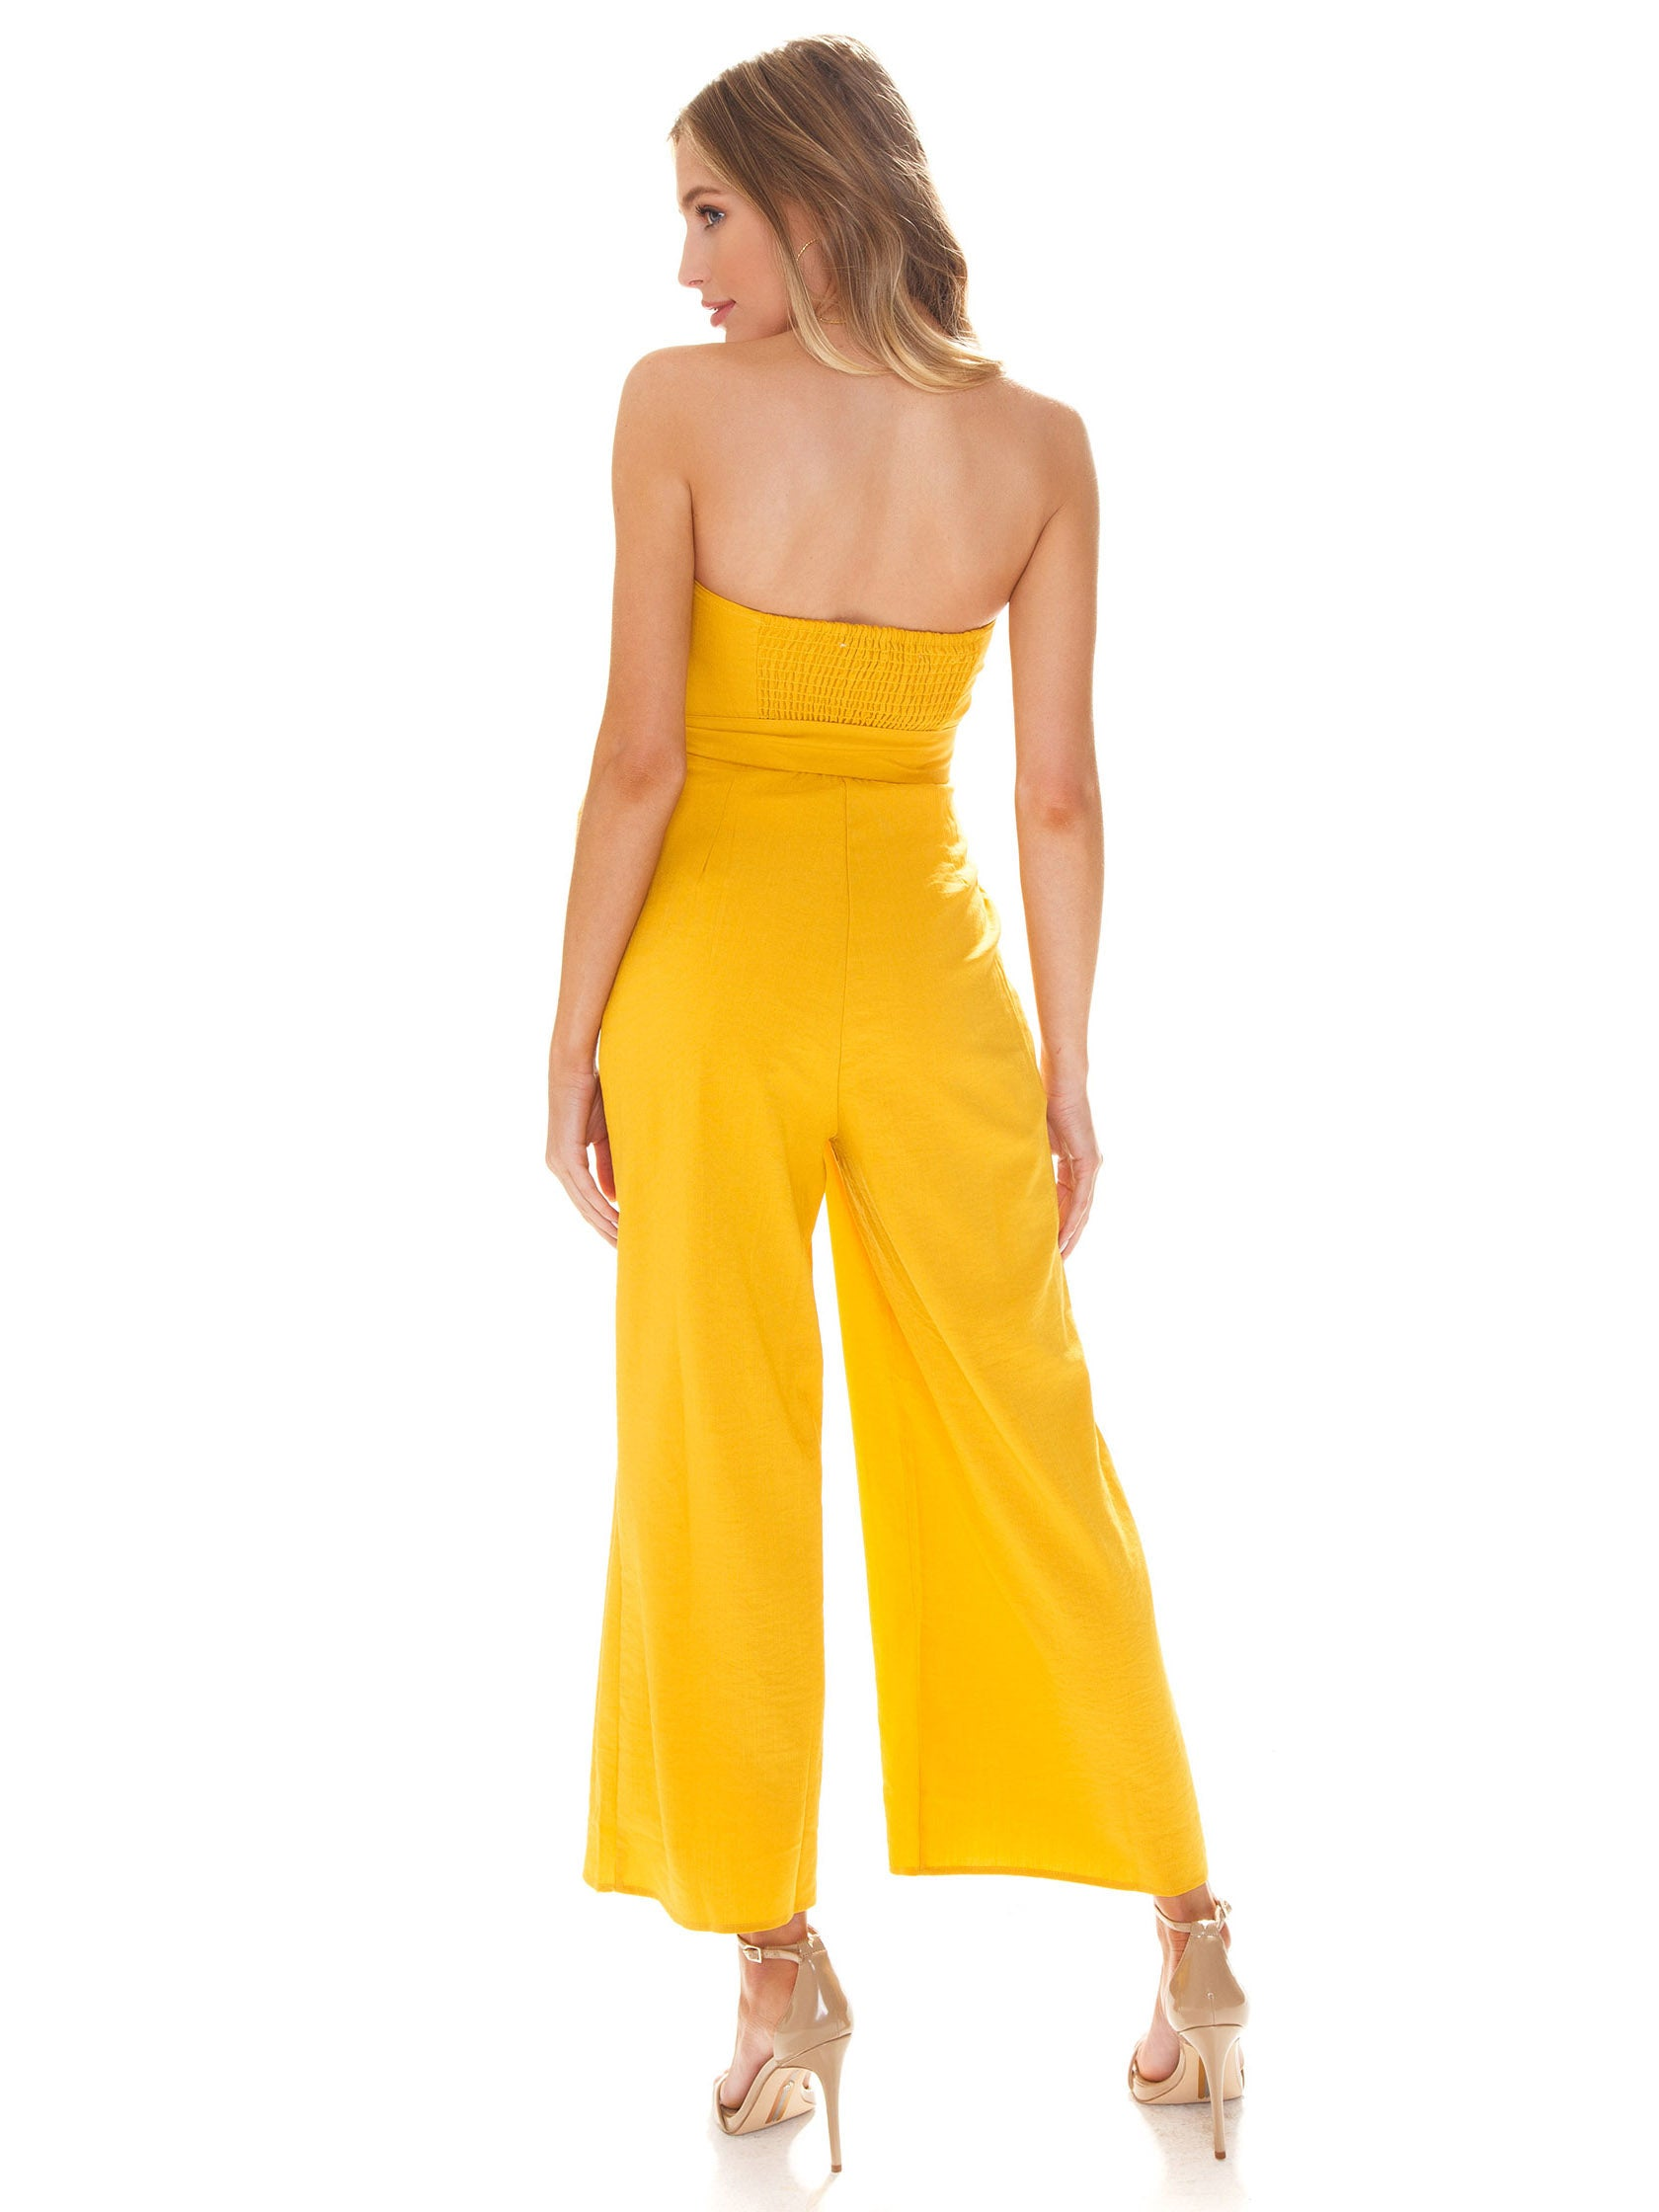 Women wearing a jumpsuit rental from ASTR called Zion Jumpsuit